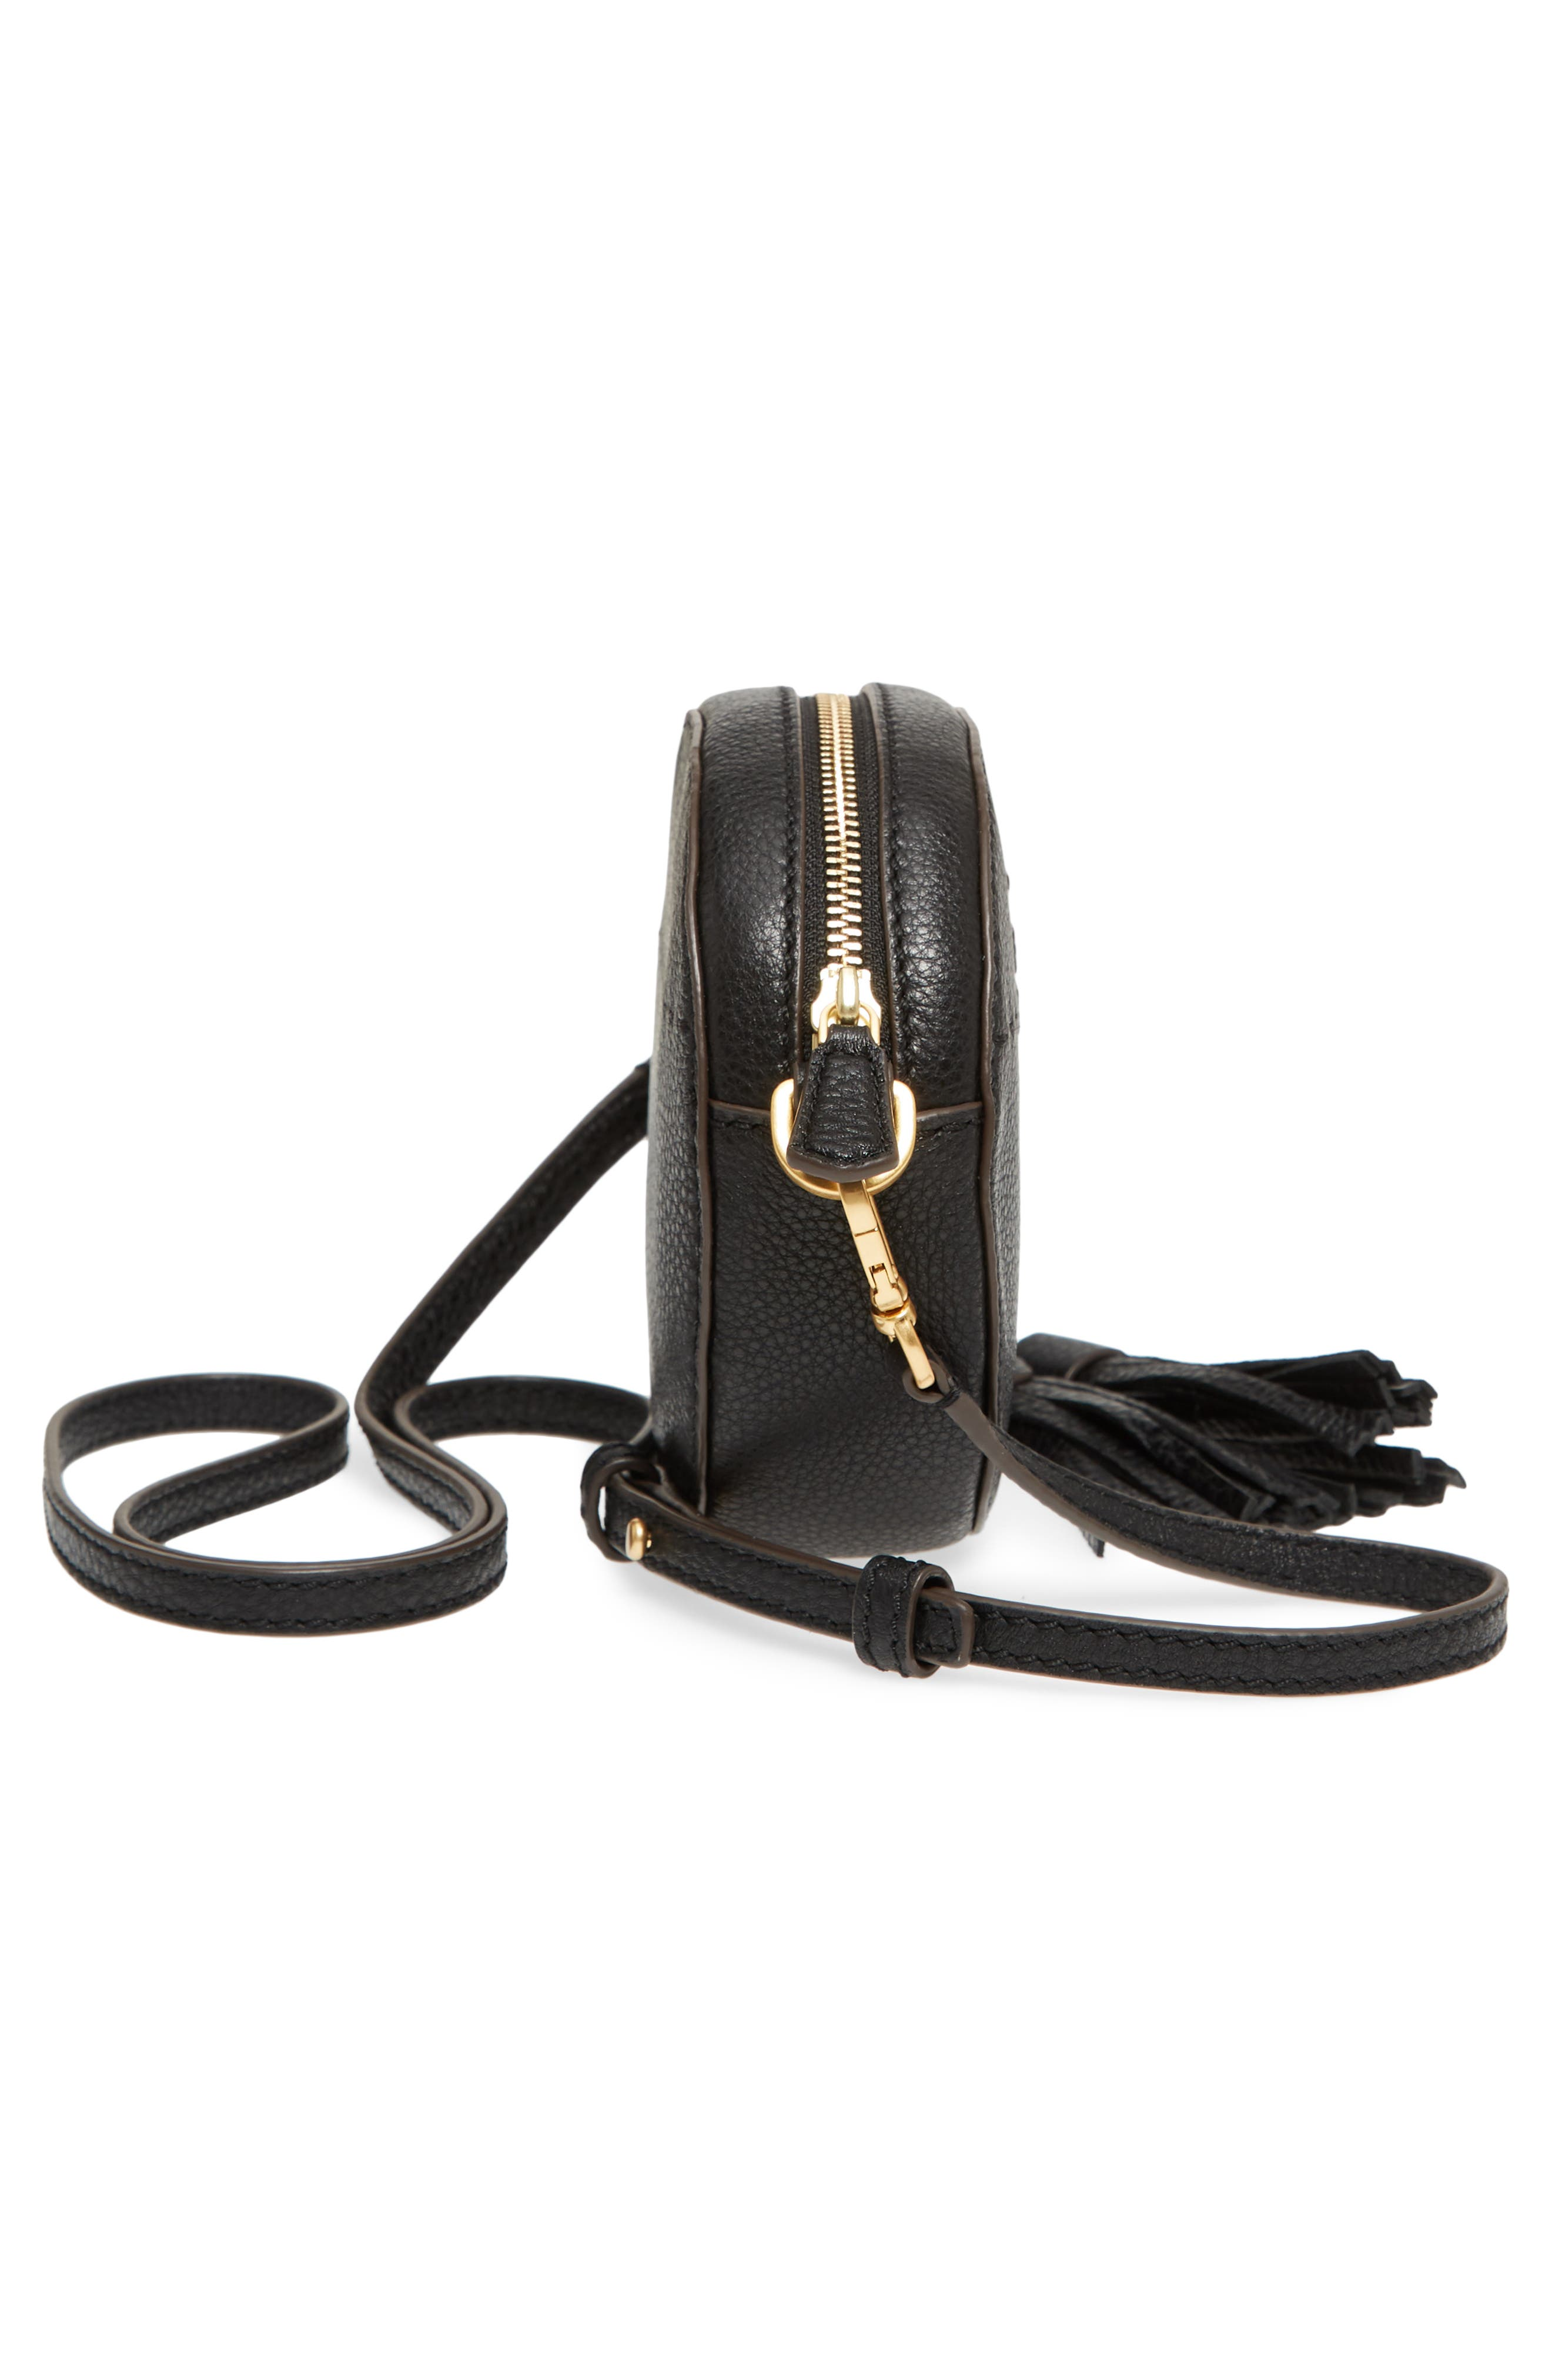 McGraw Leather Crossbody Bag,                             Alternate thumbnail 5, color,                             Black